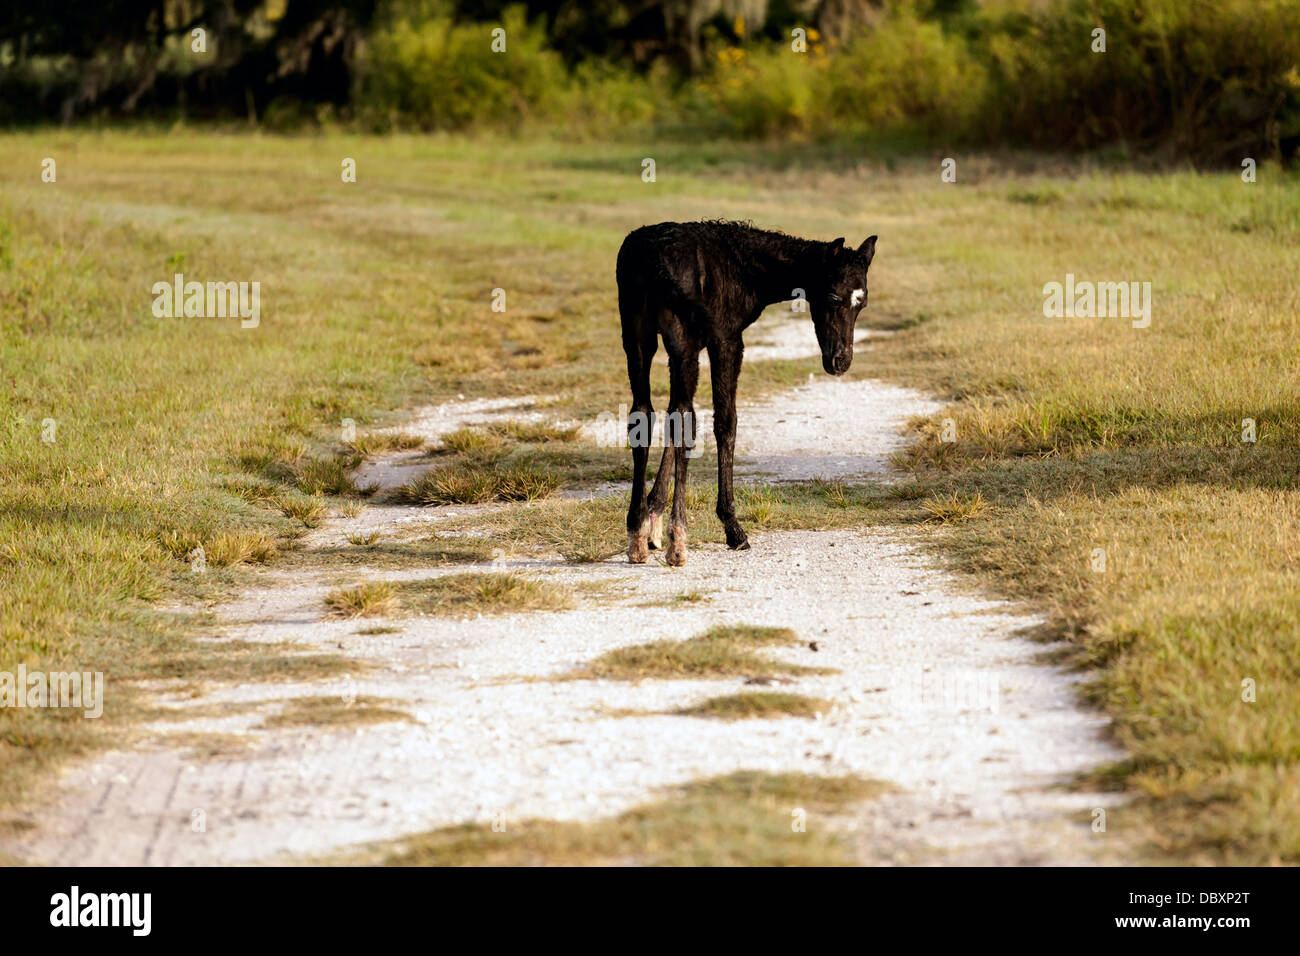 Florida Cracker foal stands on the trail damp after swimming. - Stock Image